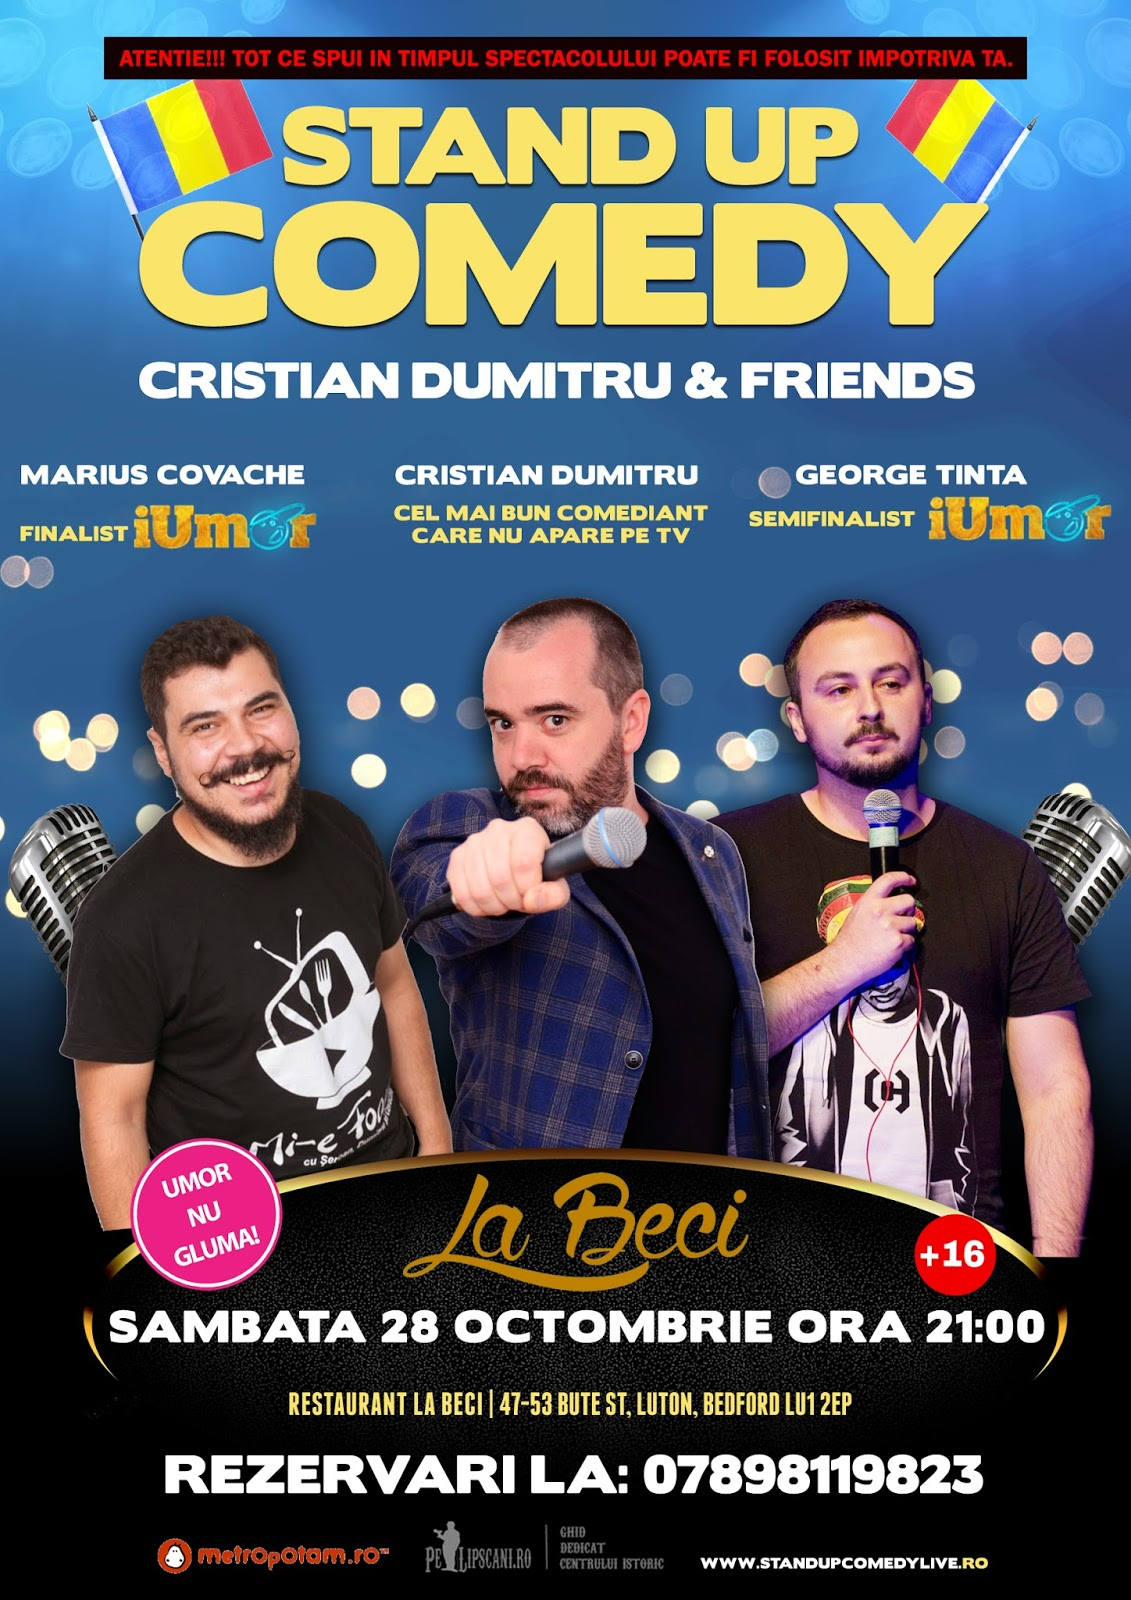 Stand-Up Comedy Anglia Luton Sambata 28 Octombrie 2017